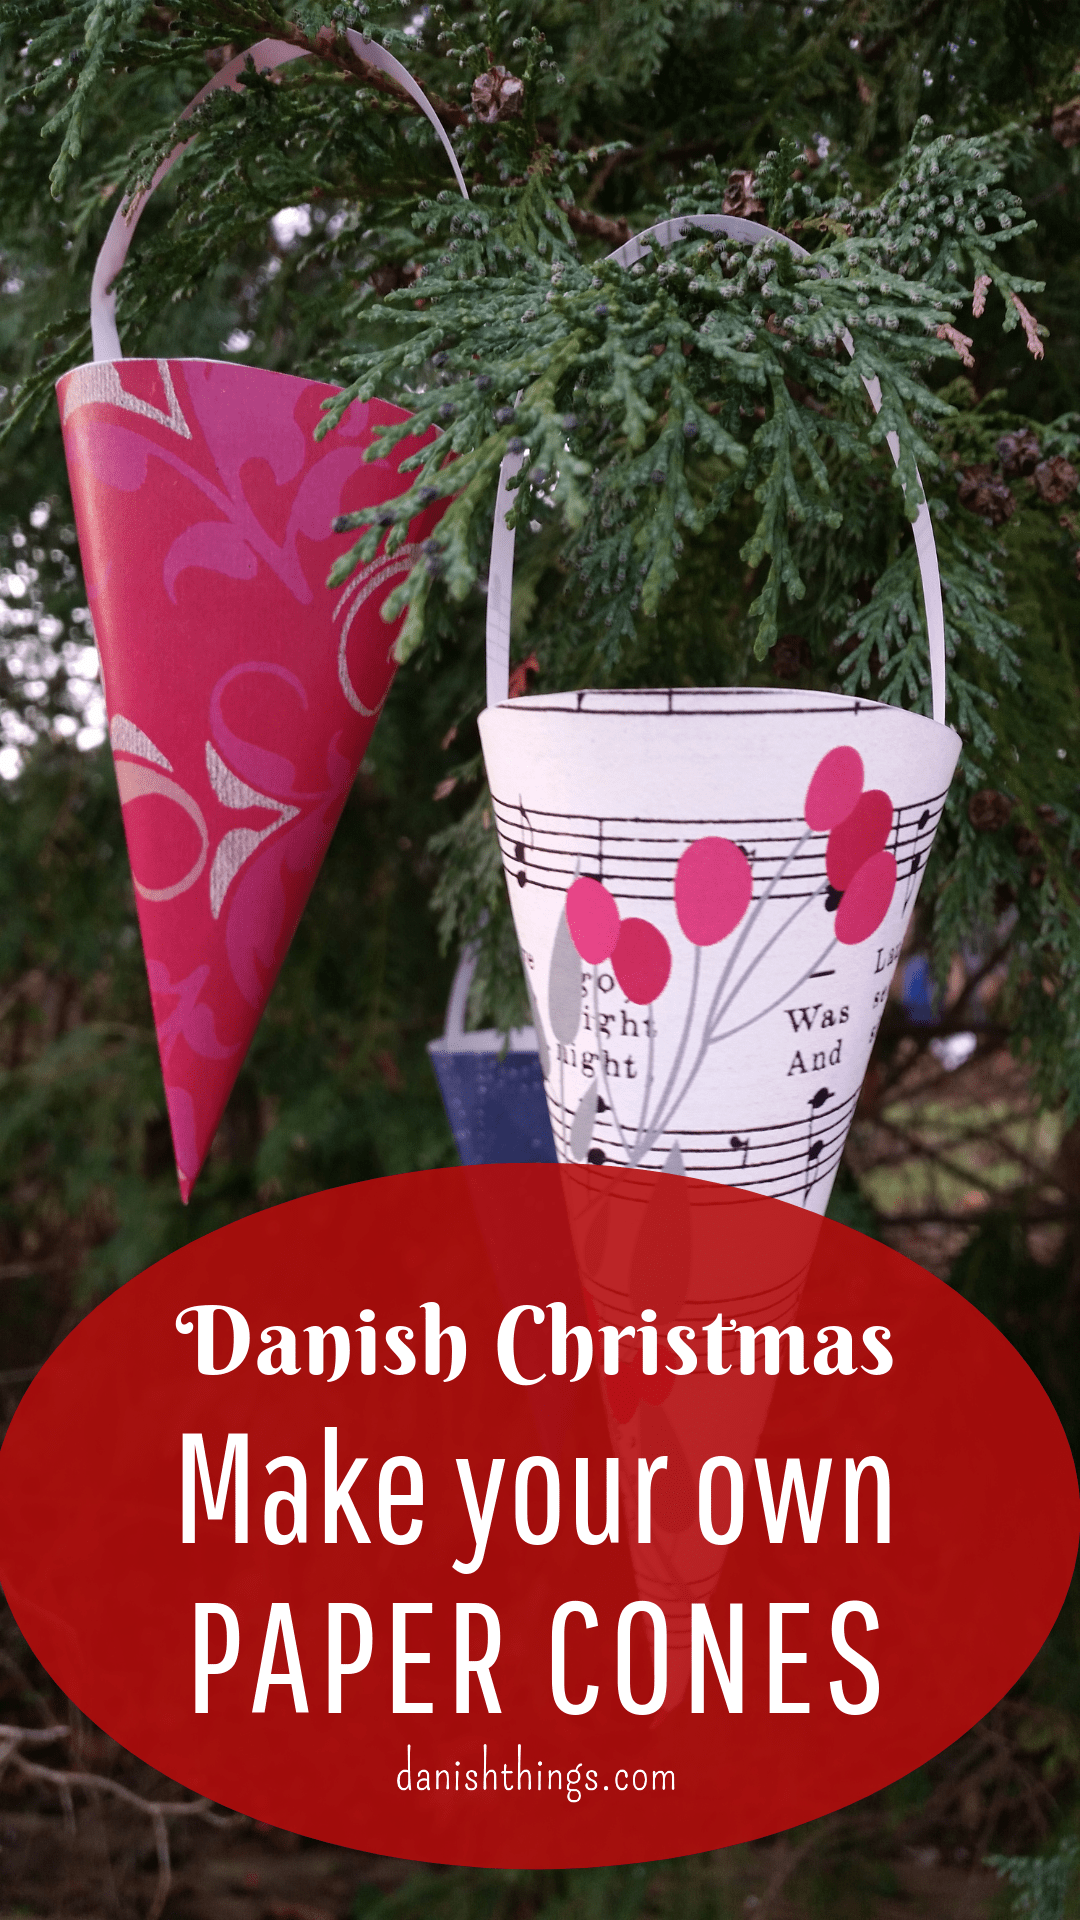 The paper cone a Danish Christmas decoration make your own paper